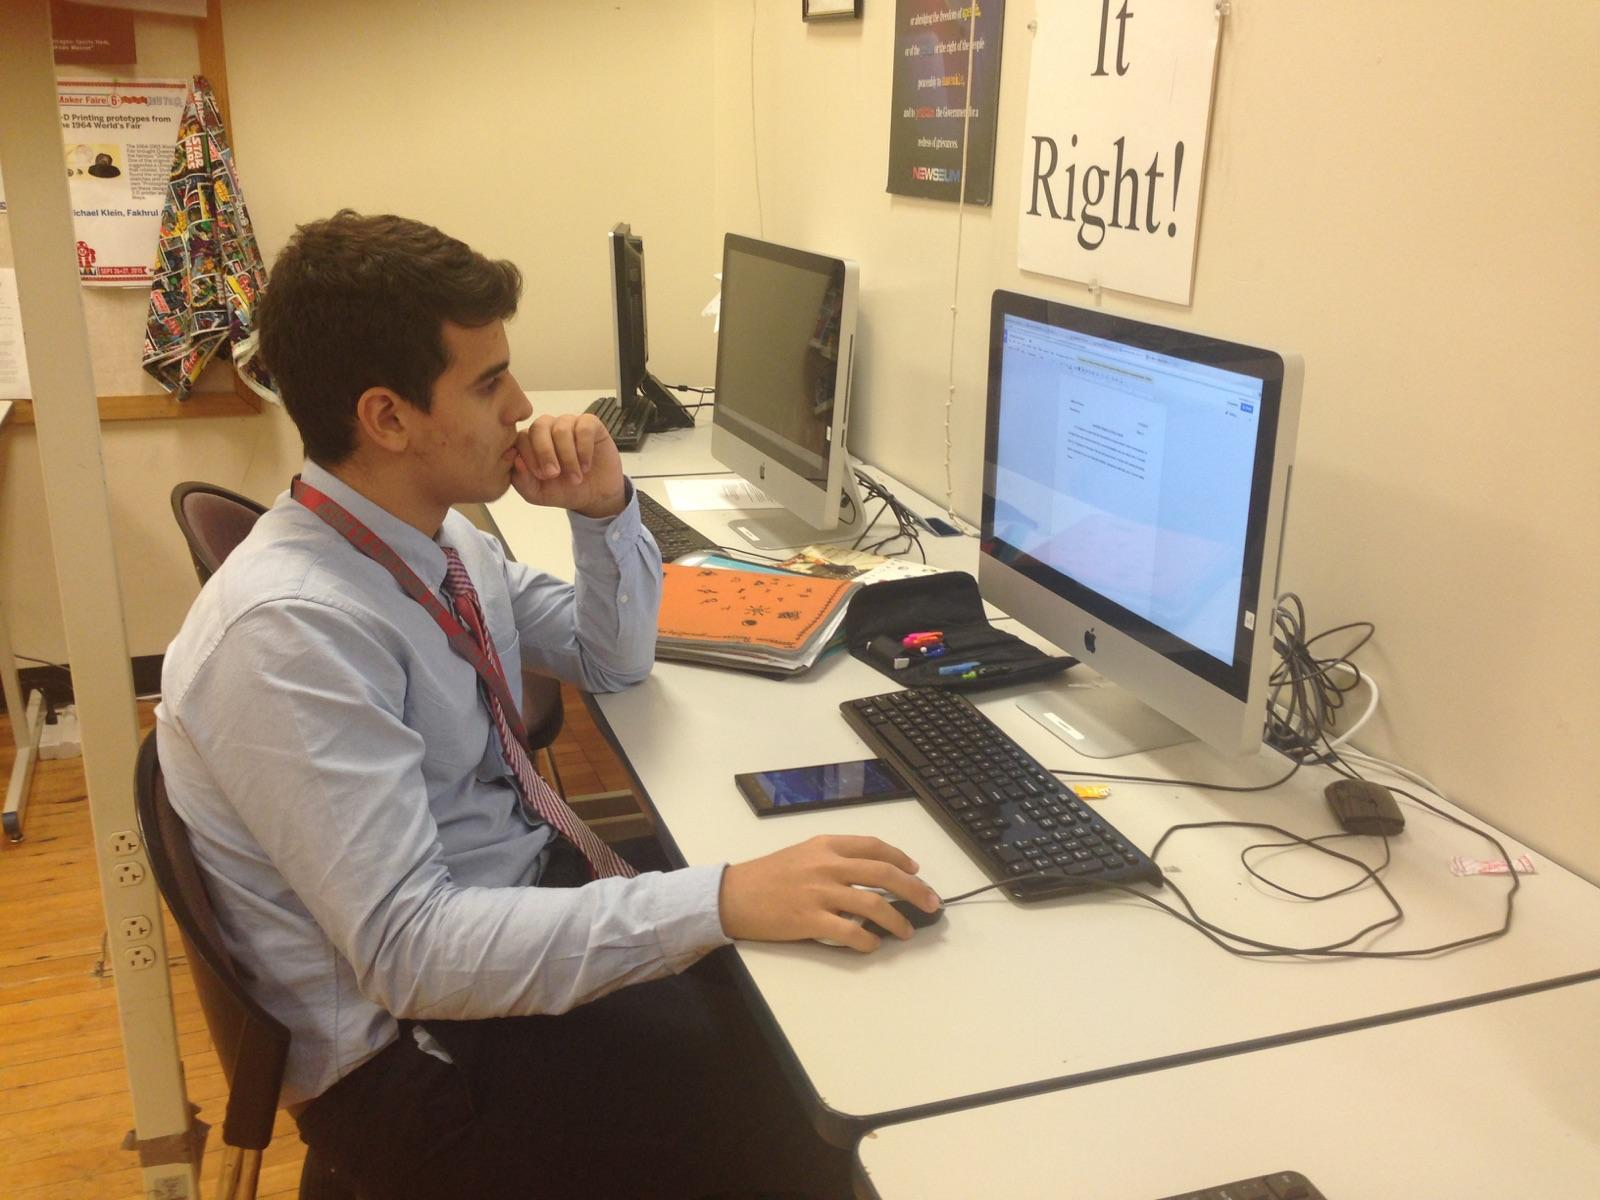 Above, UDII Jefferson Pereira completes work while wearing an atypical school outfit of shirt and tie. Jefferson supports this silent protest.